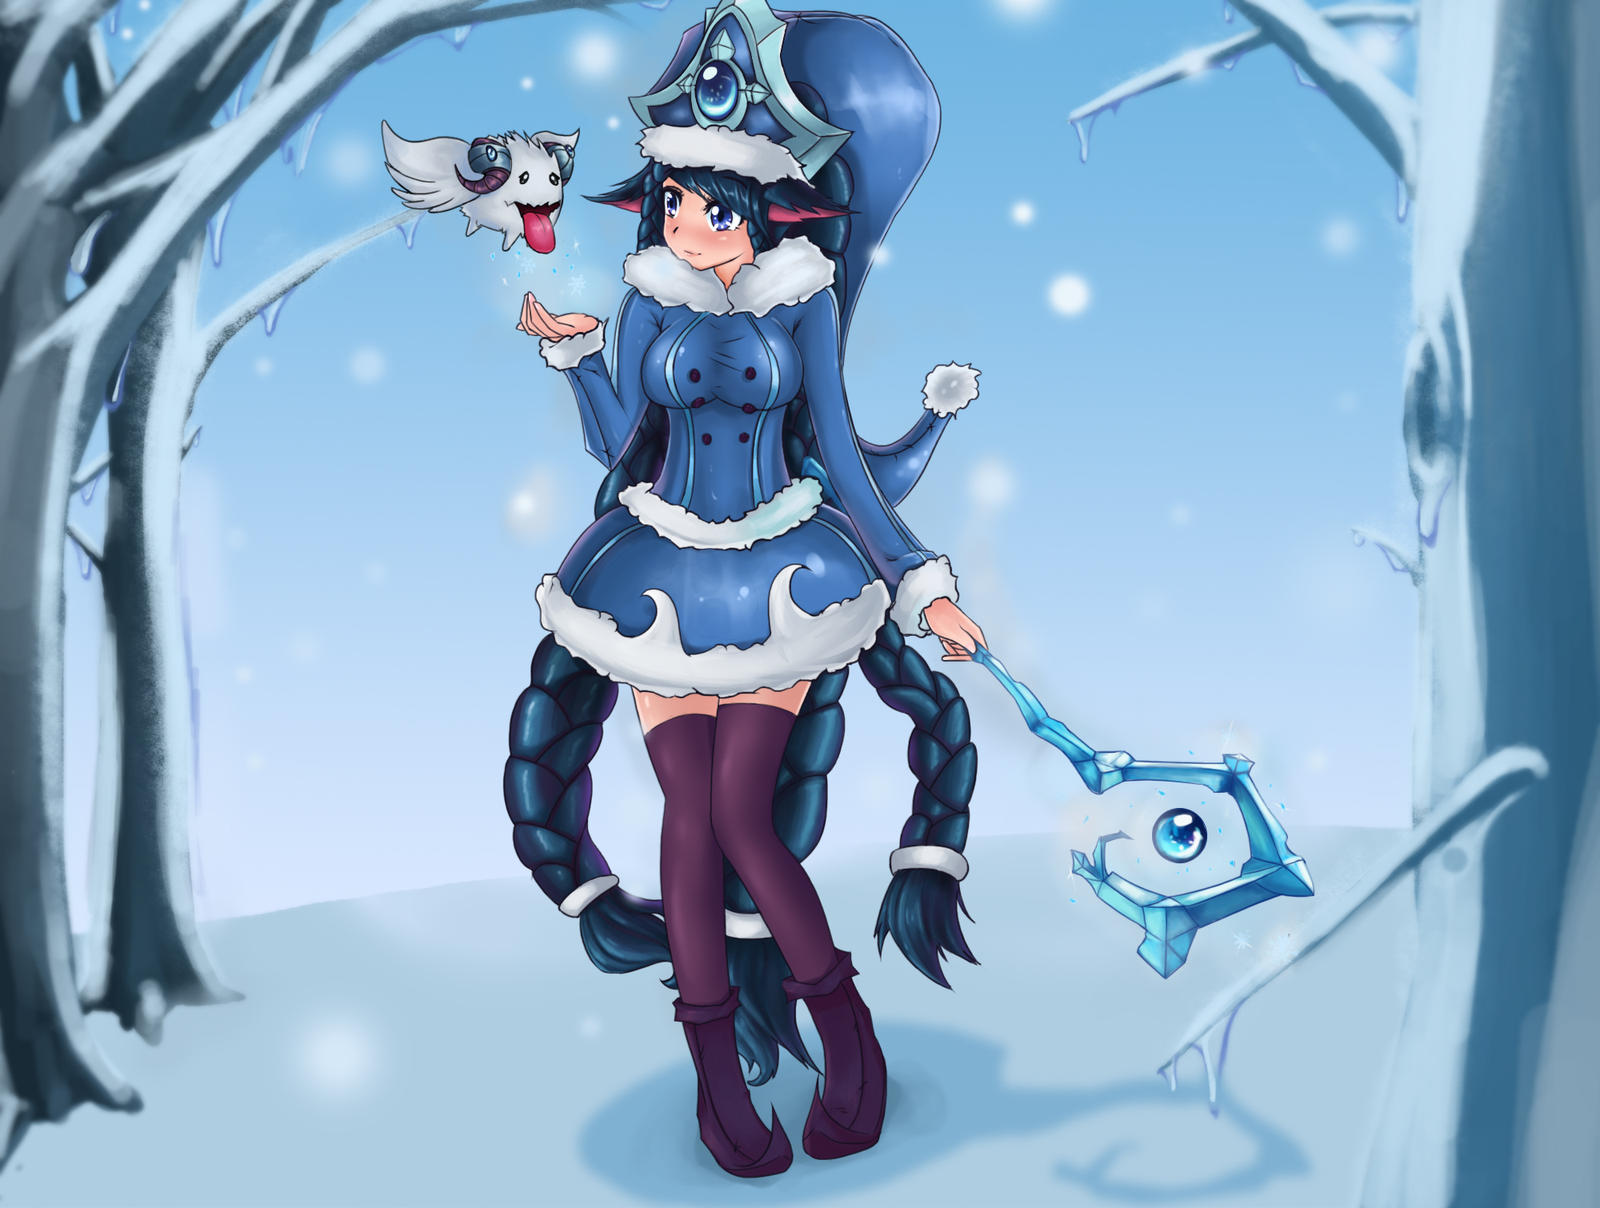 Winter Wonder Lulu by NightGreenMagician on DeviantArt